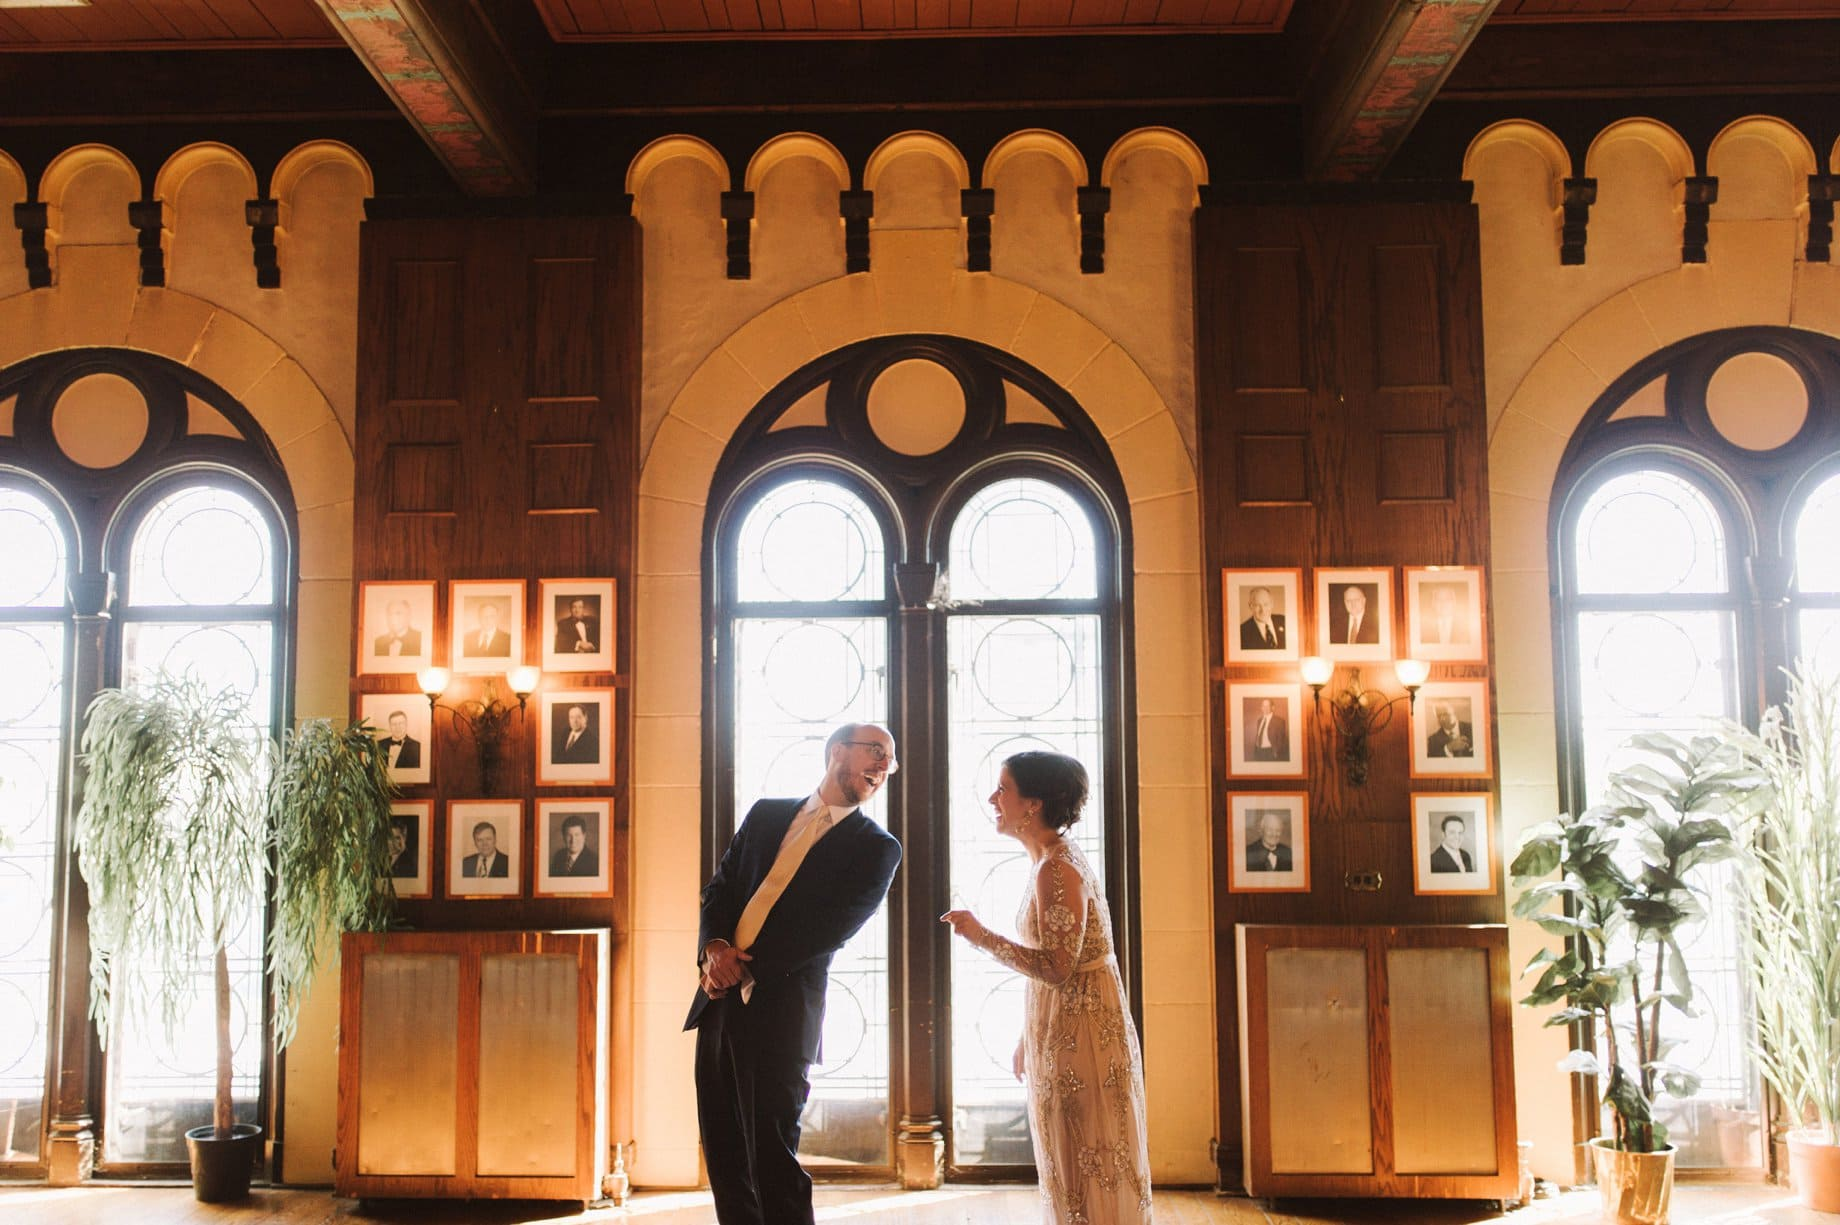 detroit wedding photographer heather jowett captures a first look between a bride and groom at the players playhouse